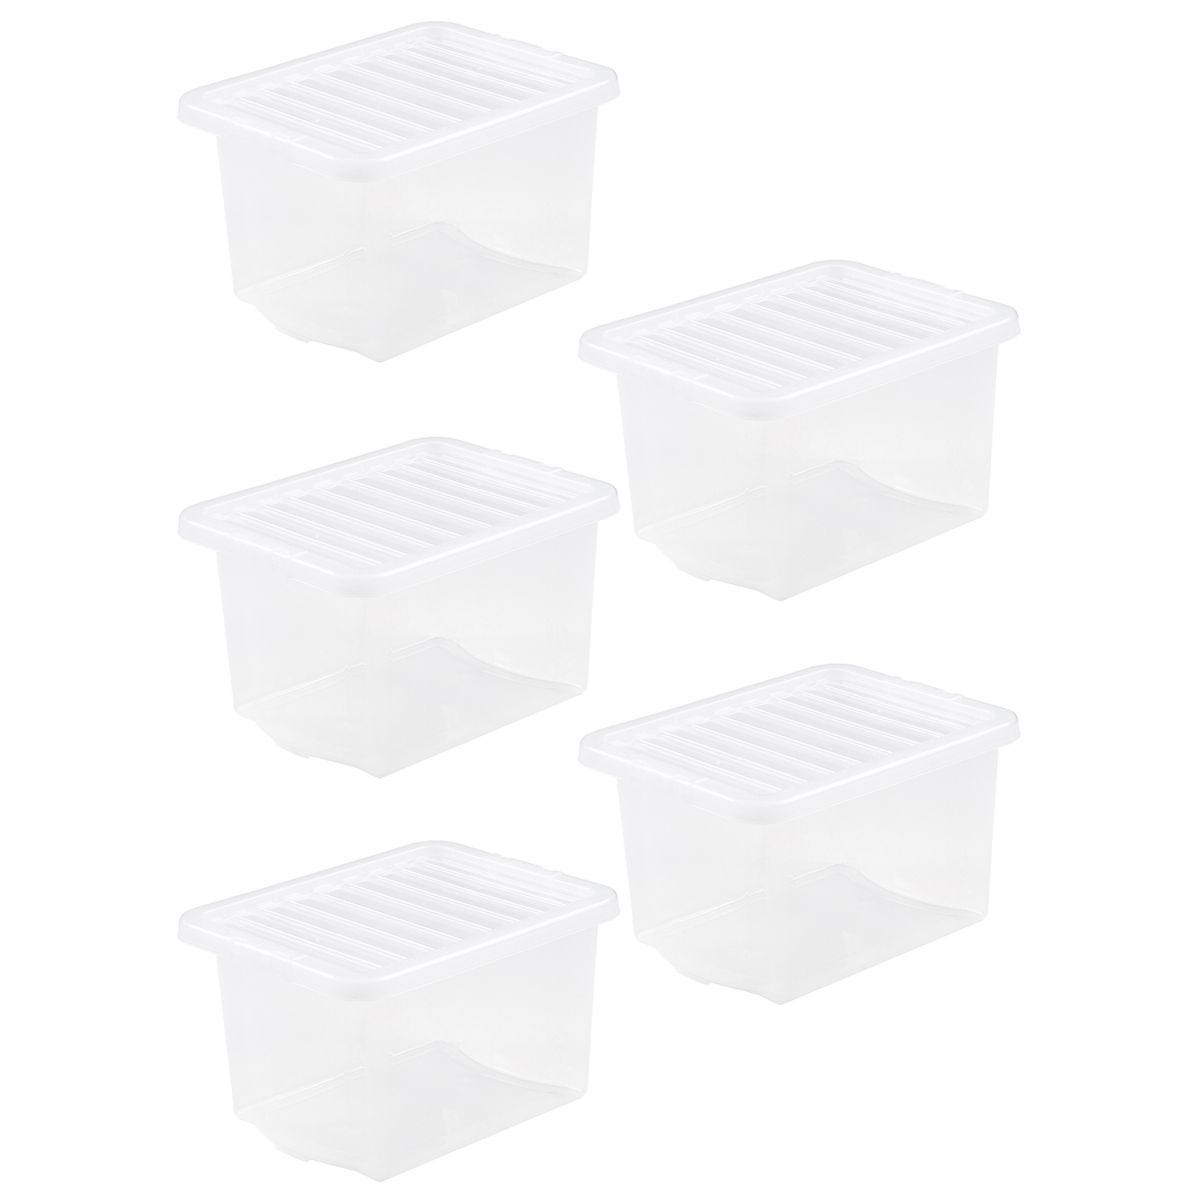 Wham Crystal Clear Storage Box with Lid 24L - Set of 5